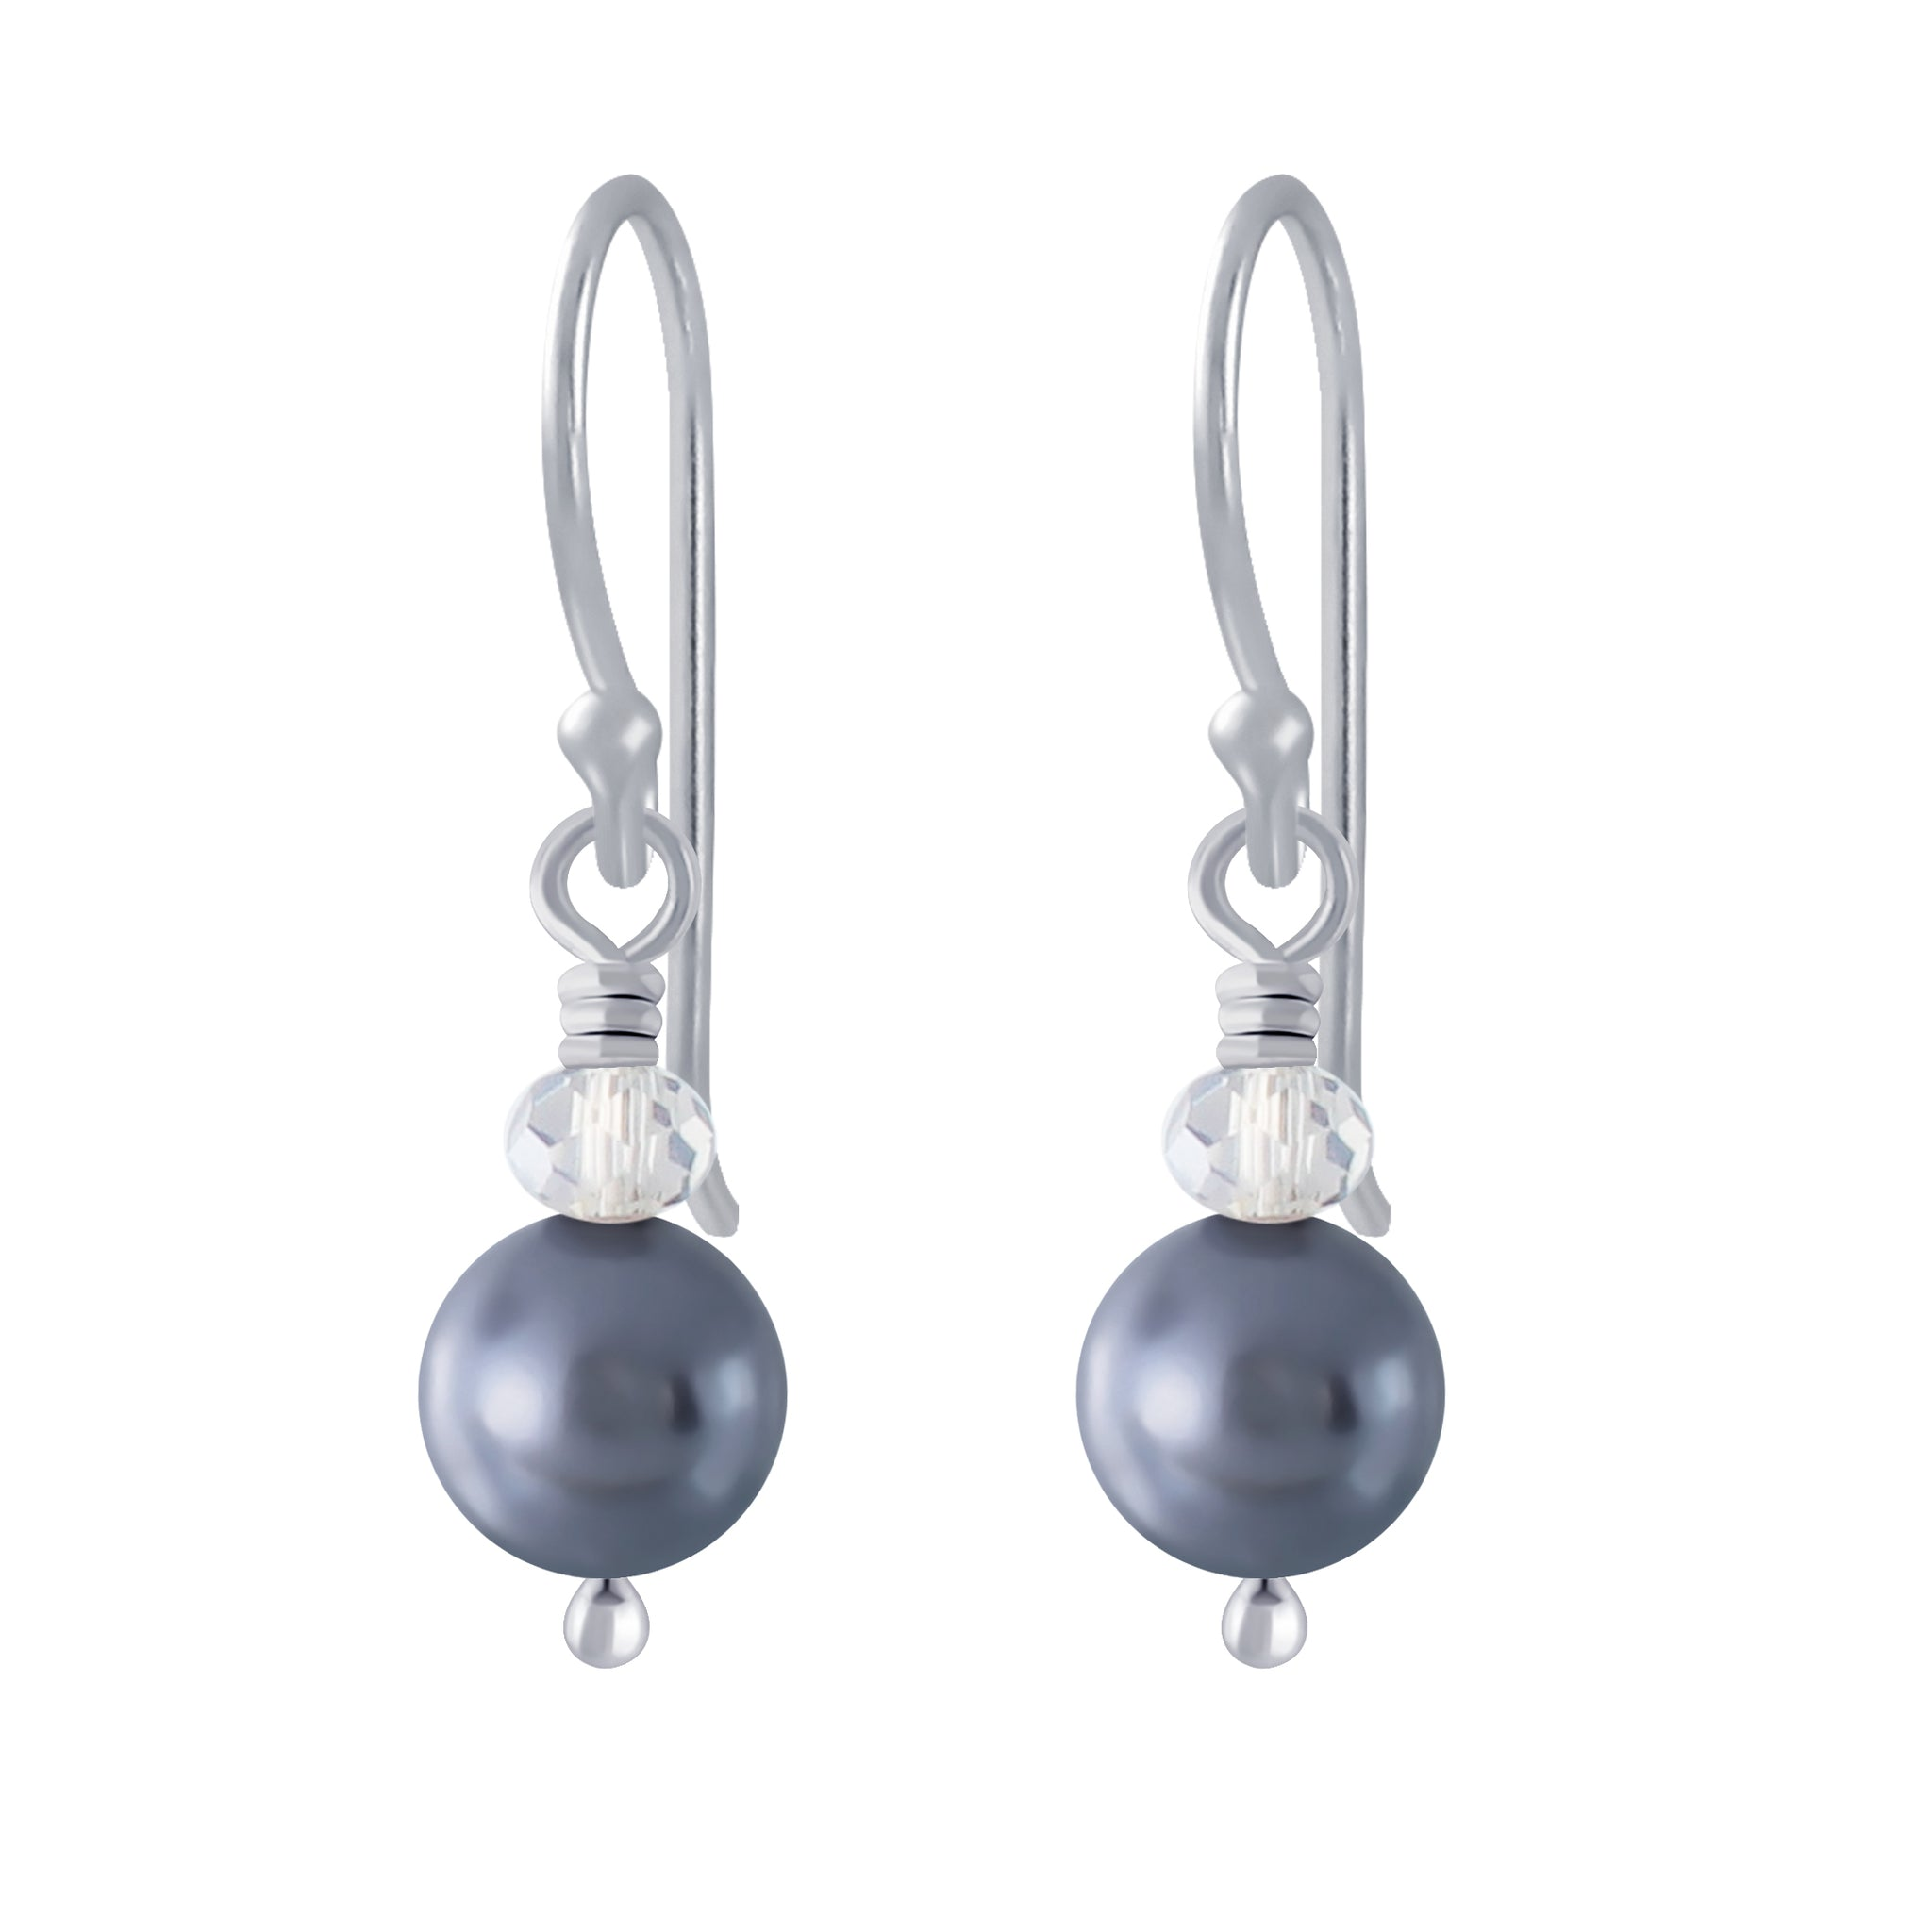 Silver Handmade Pearl Earrings